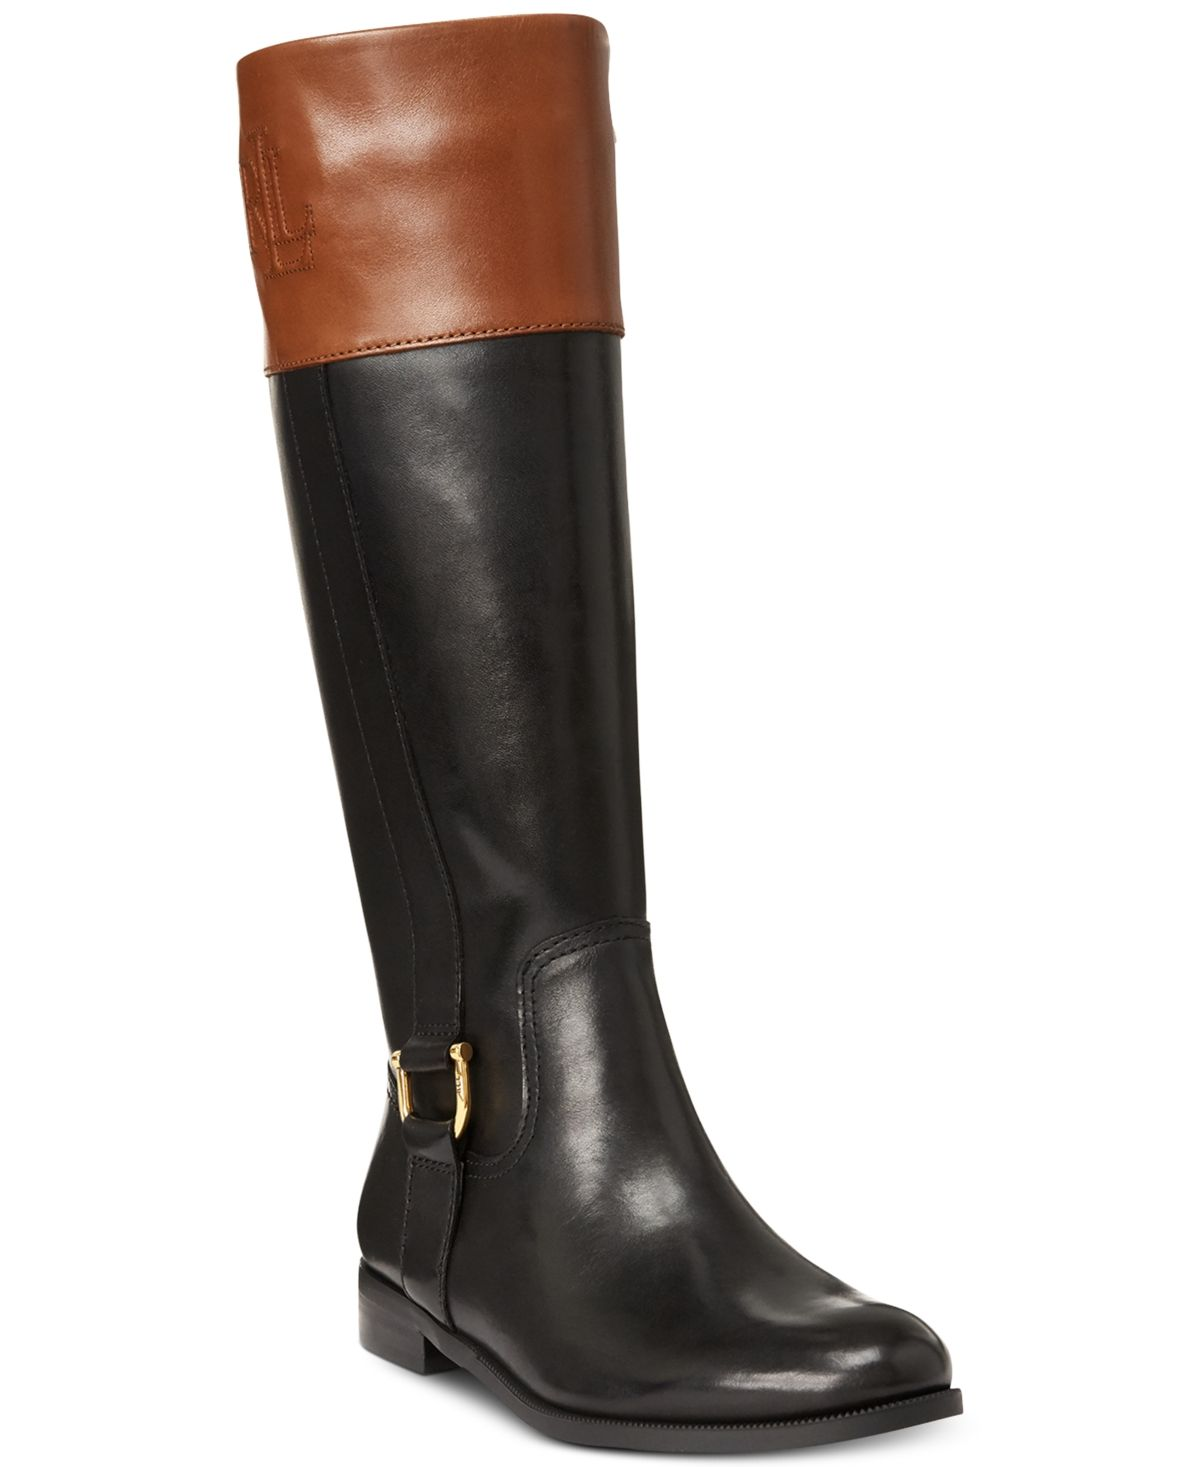 Lauren Ralph Lauren Bernadine Wide-Calf Riding Boots - Two Tone